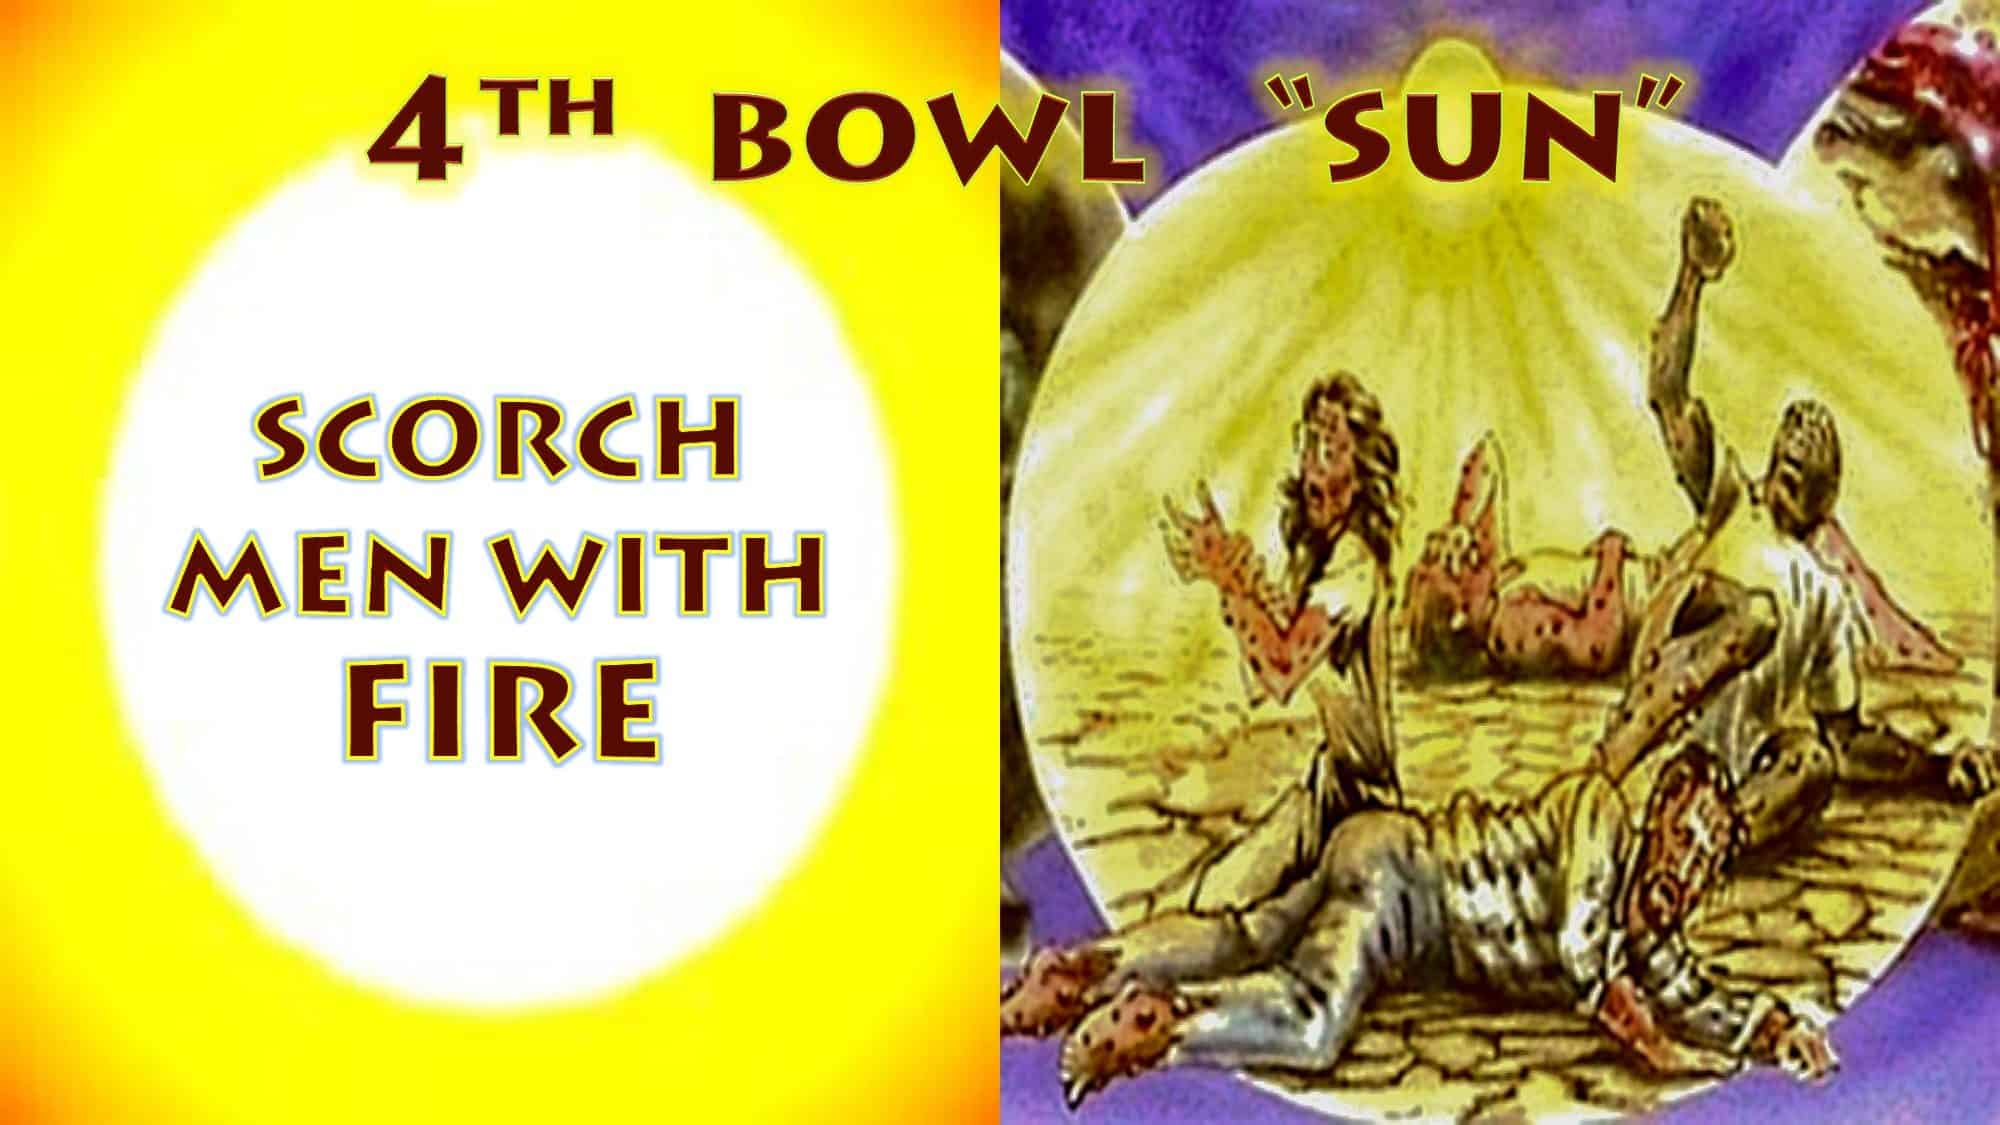 Fourth Vial,Fouth Bowl,4th Vial,4th Bowl of Wrath,Wrath,Sun,Scorch Men,Fire,Cook,Painful Soars,Global Warming,Seven Bowls of Wrath,Cursed God,Book of Revelation, Apocalypse,Revelation Chapter 16